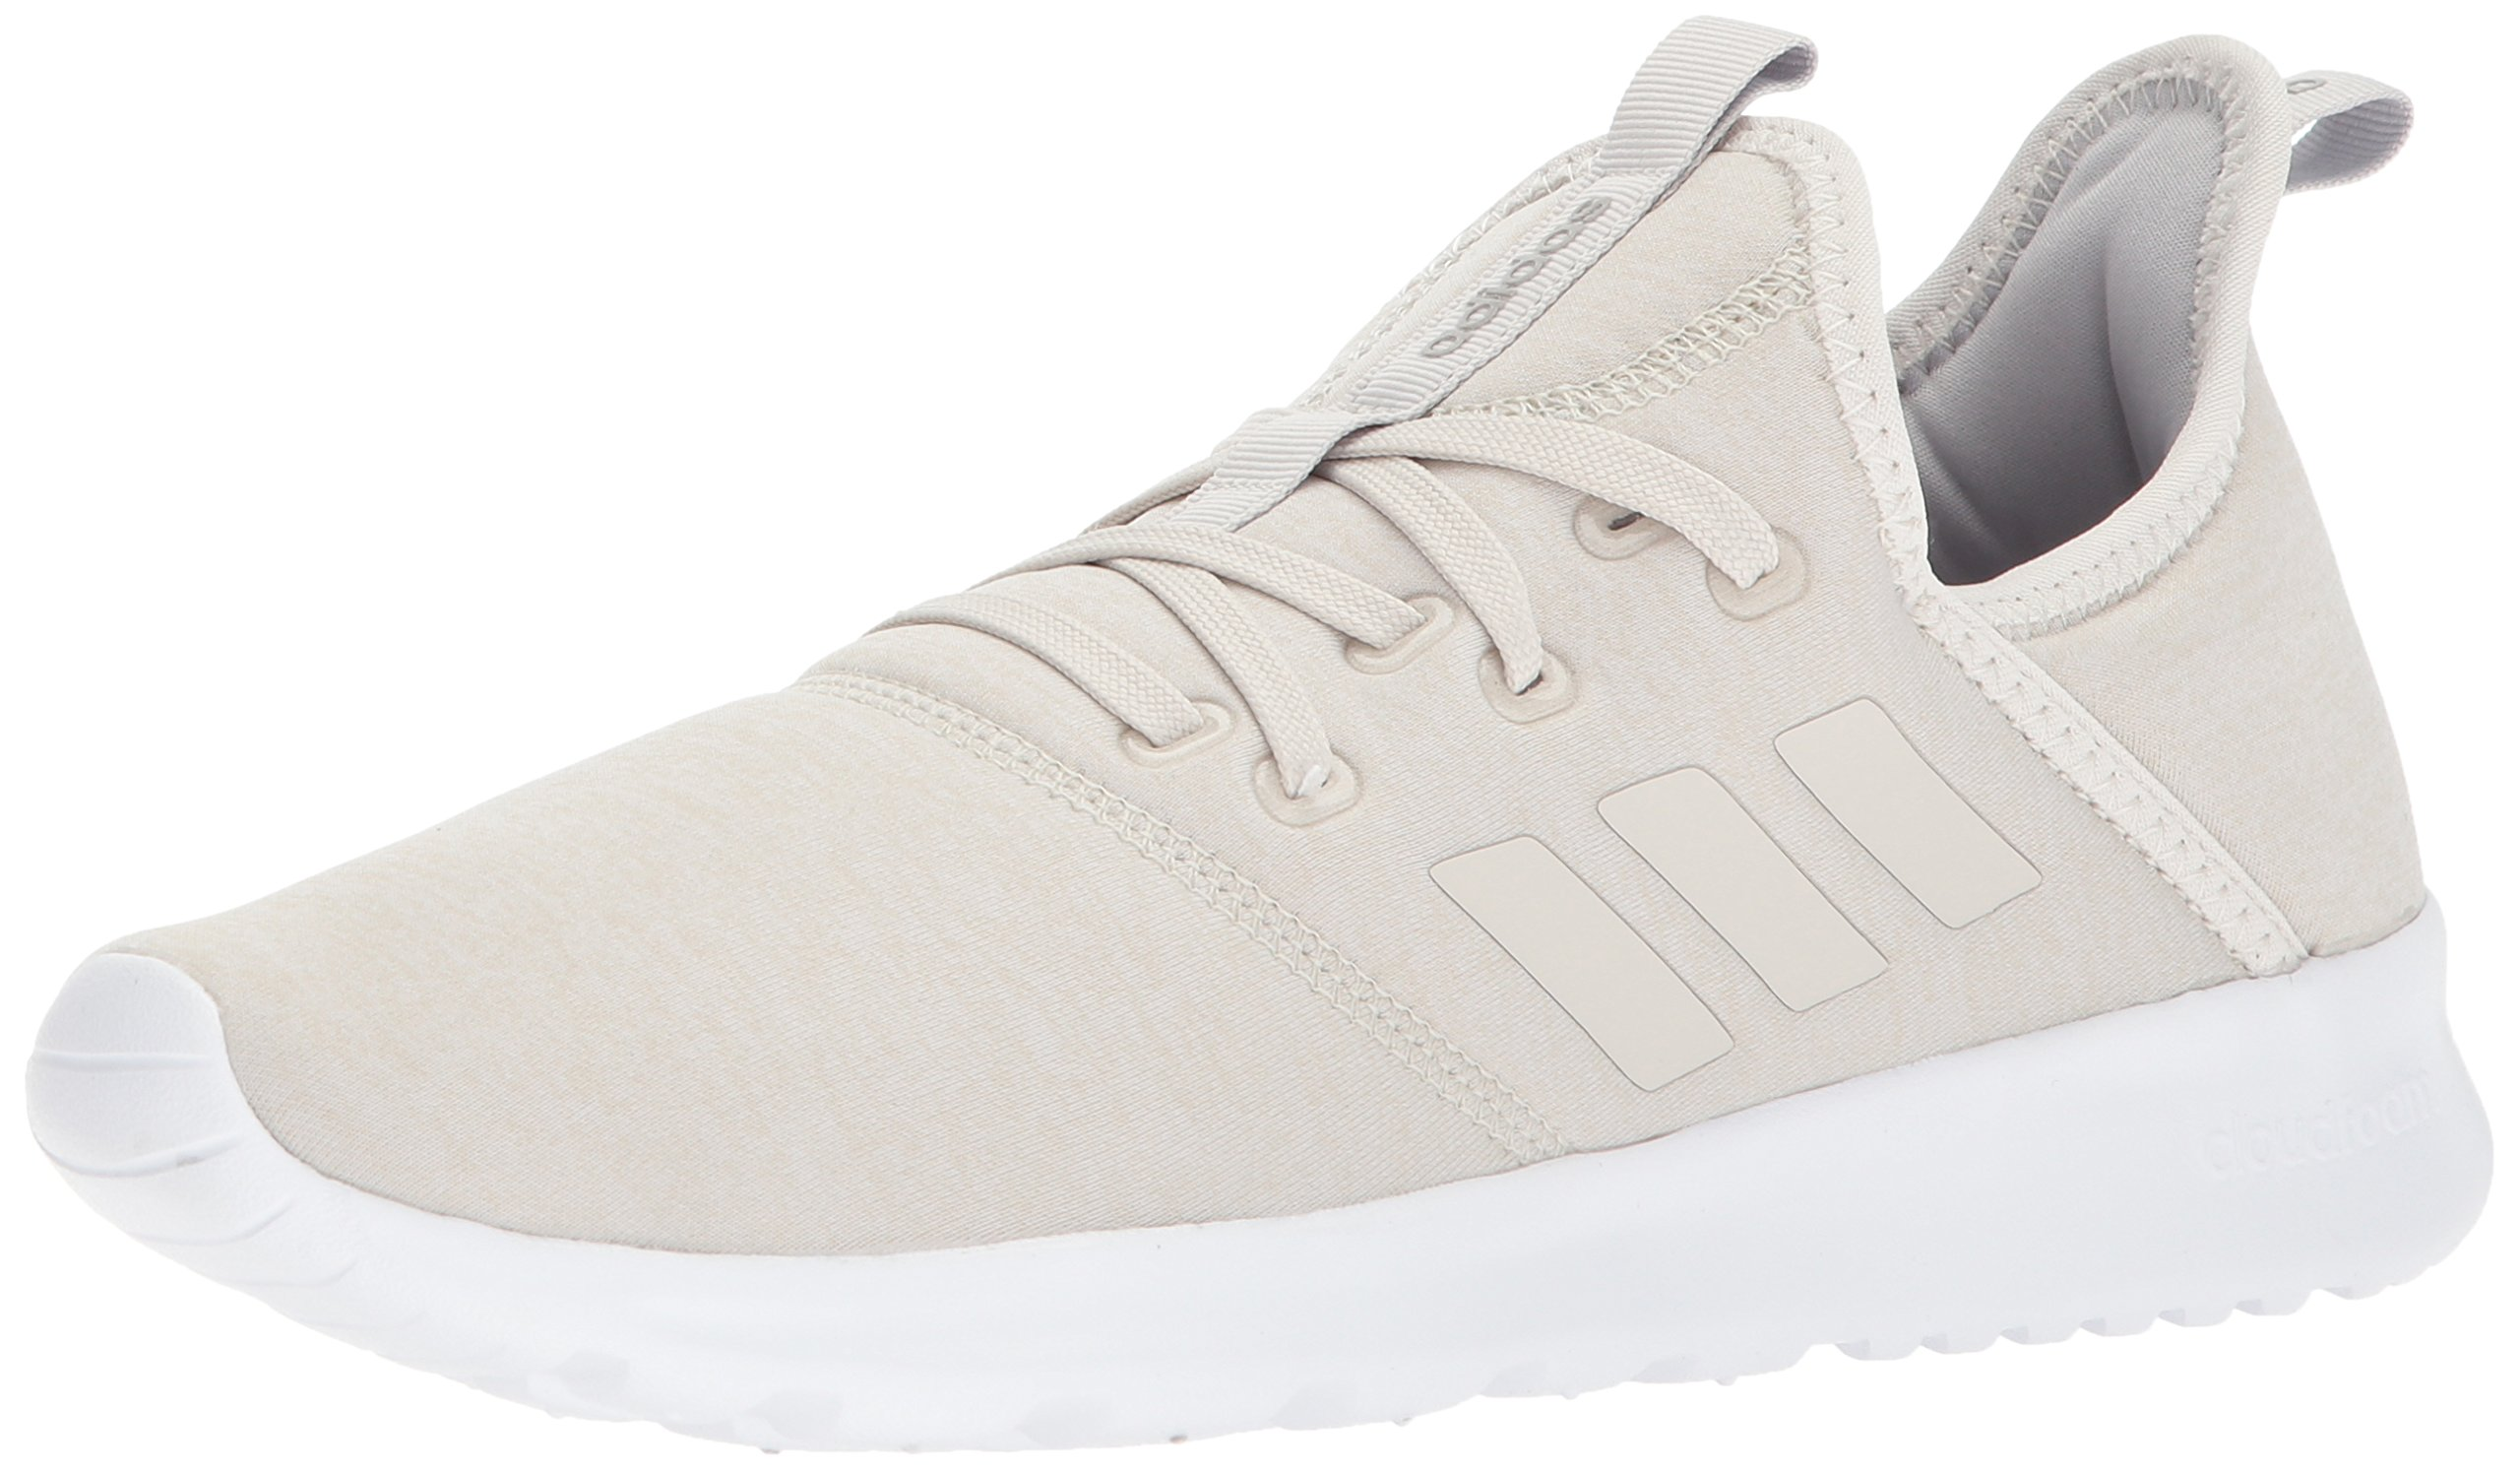 adidas Women's Cloudfoam Pure, Crystal White/Crystal White/Talc, 11 M US